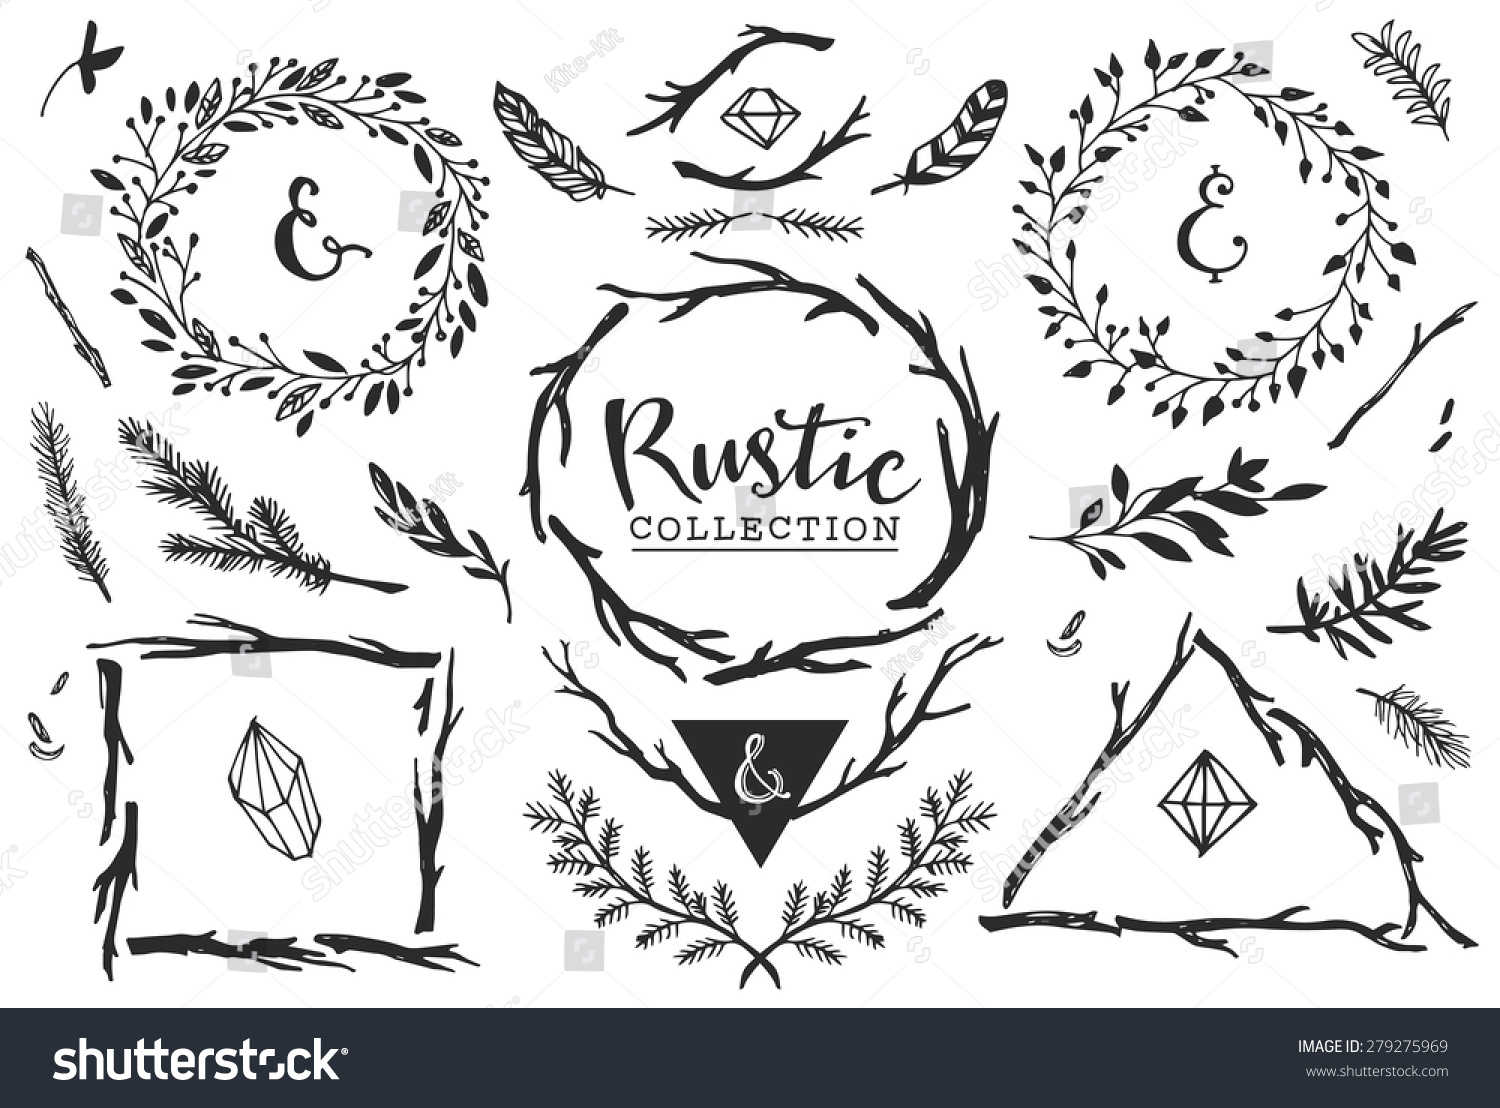 rustic decorative elements with lettering hand drawn vintage vector design set